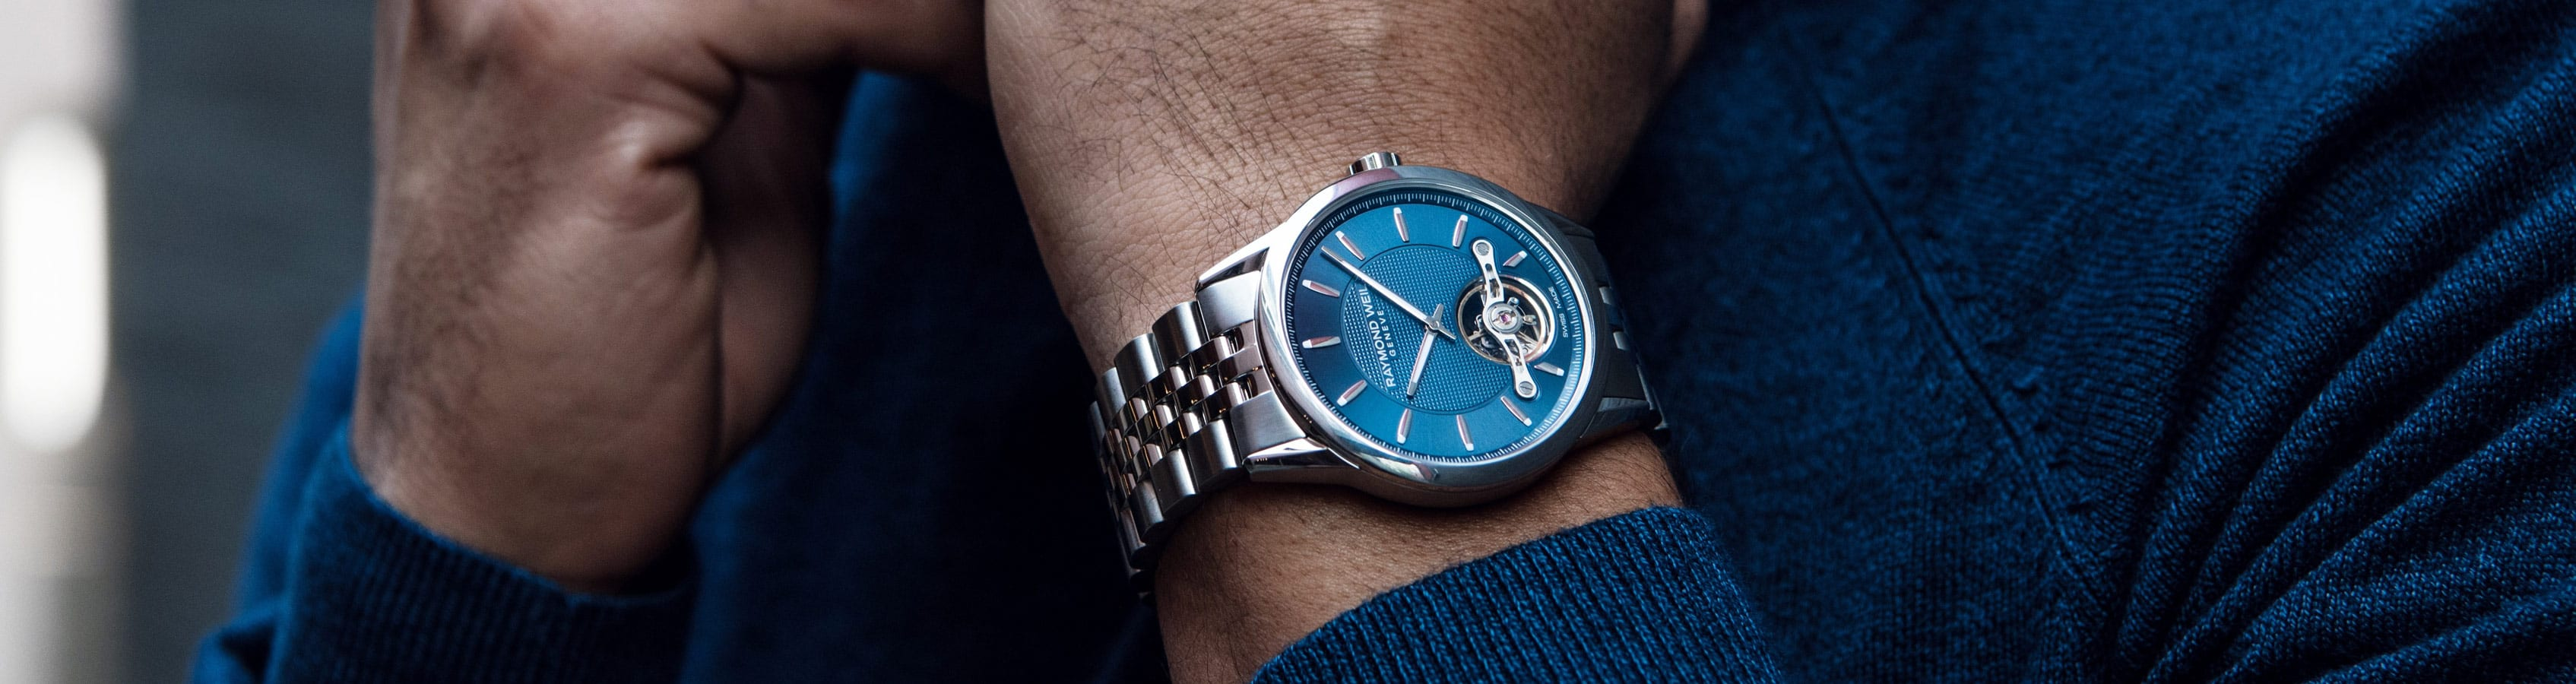 RAYMOND WEIL Blue Men's Freelancer Automatic Watch with a Visible Balance Wheel.